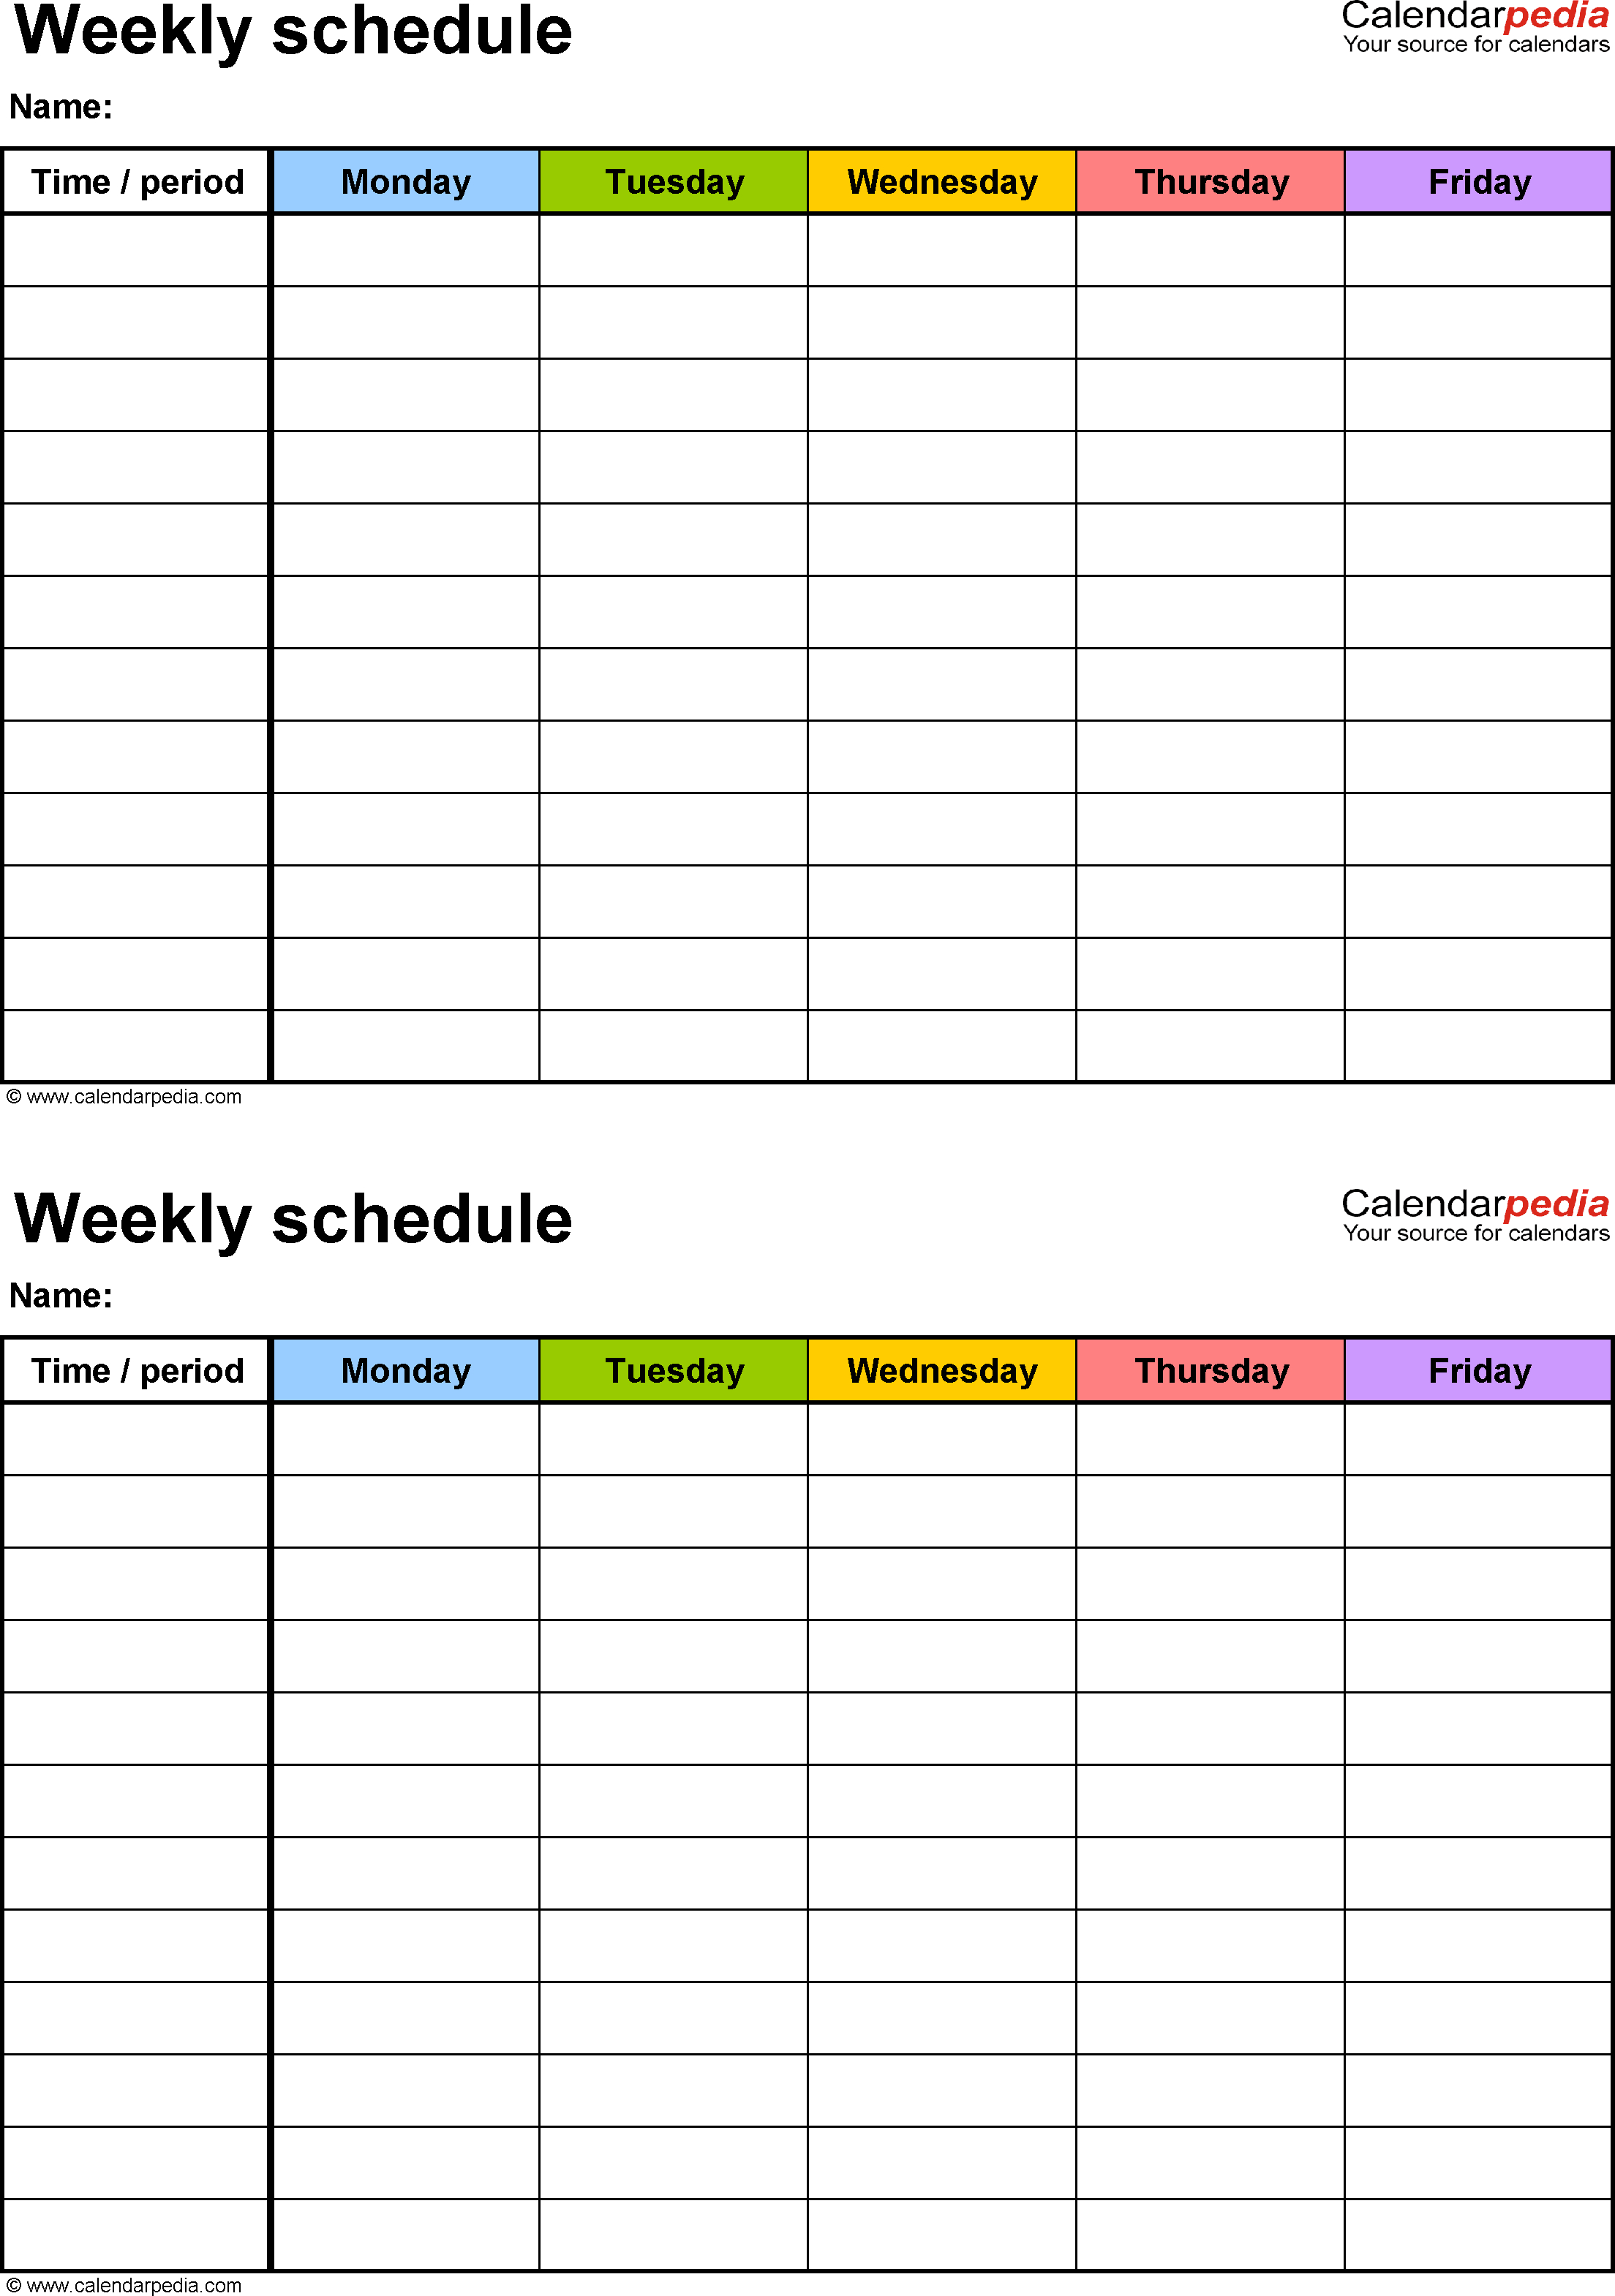 Free Weekly Schedule Templates For Word - 18 Templates - Free Printable School Agenda Templates